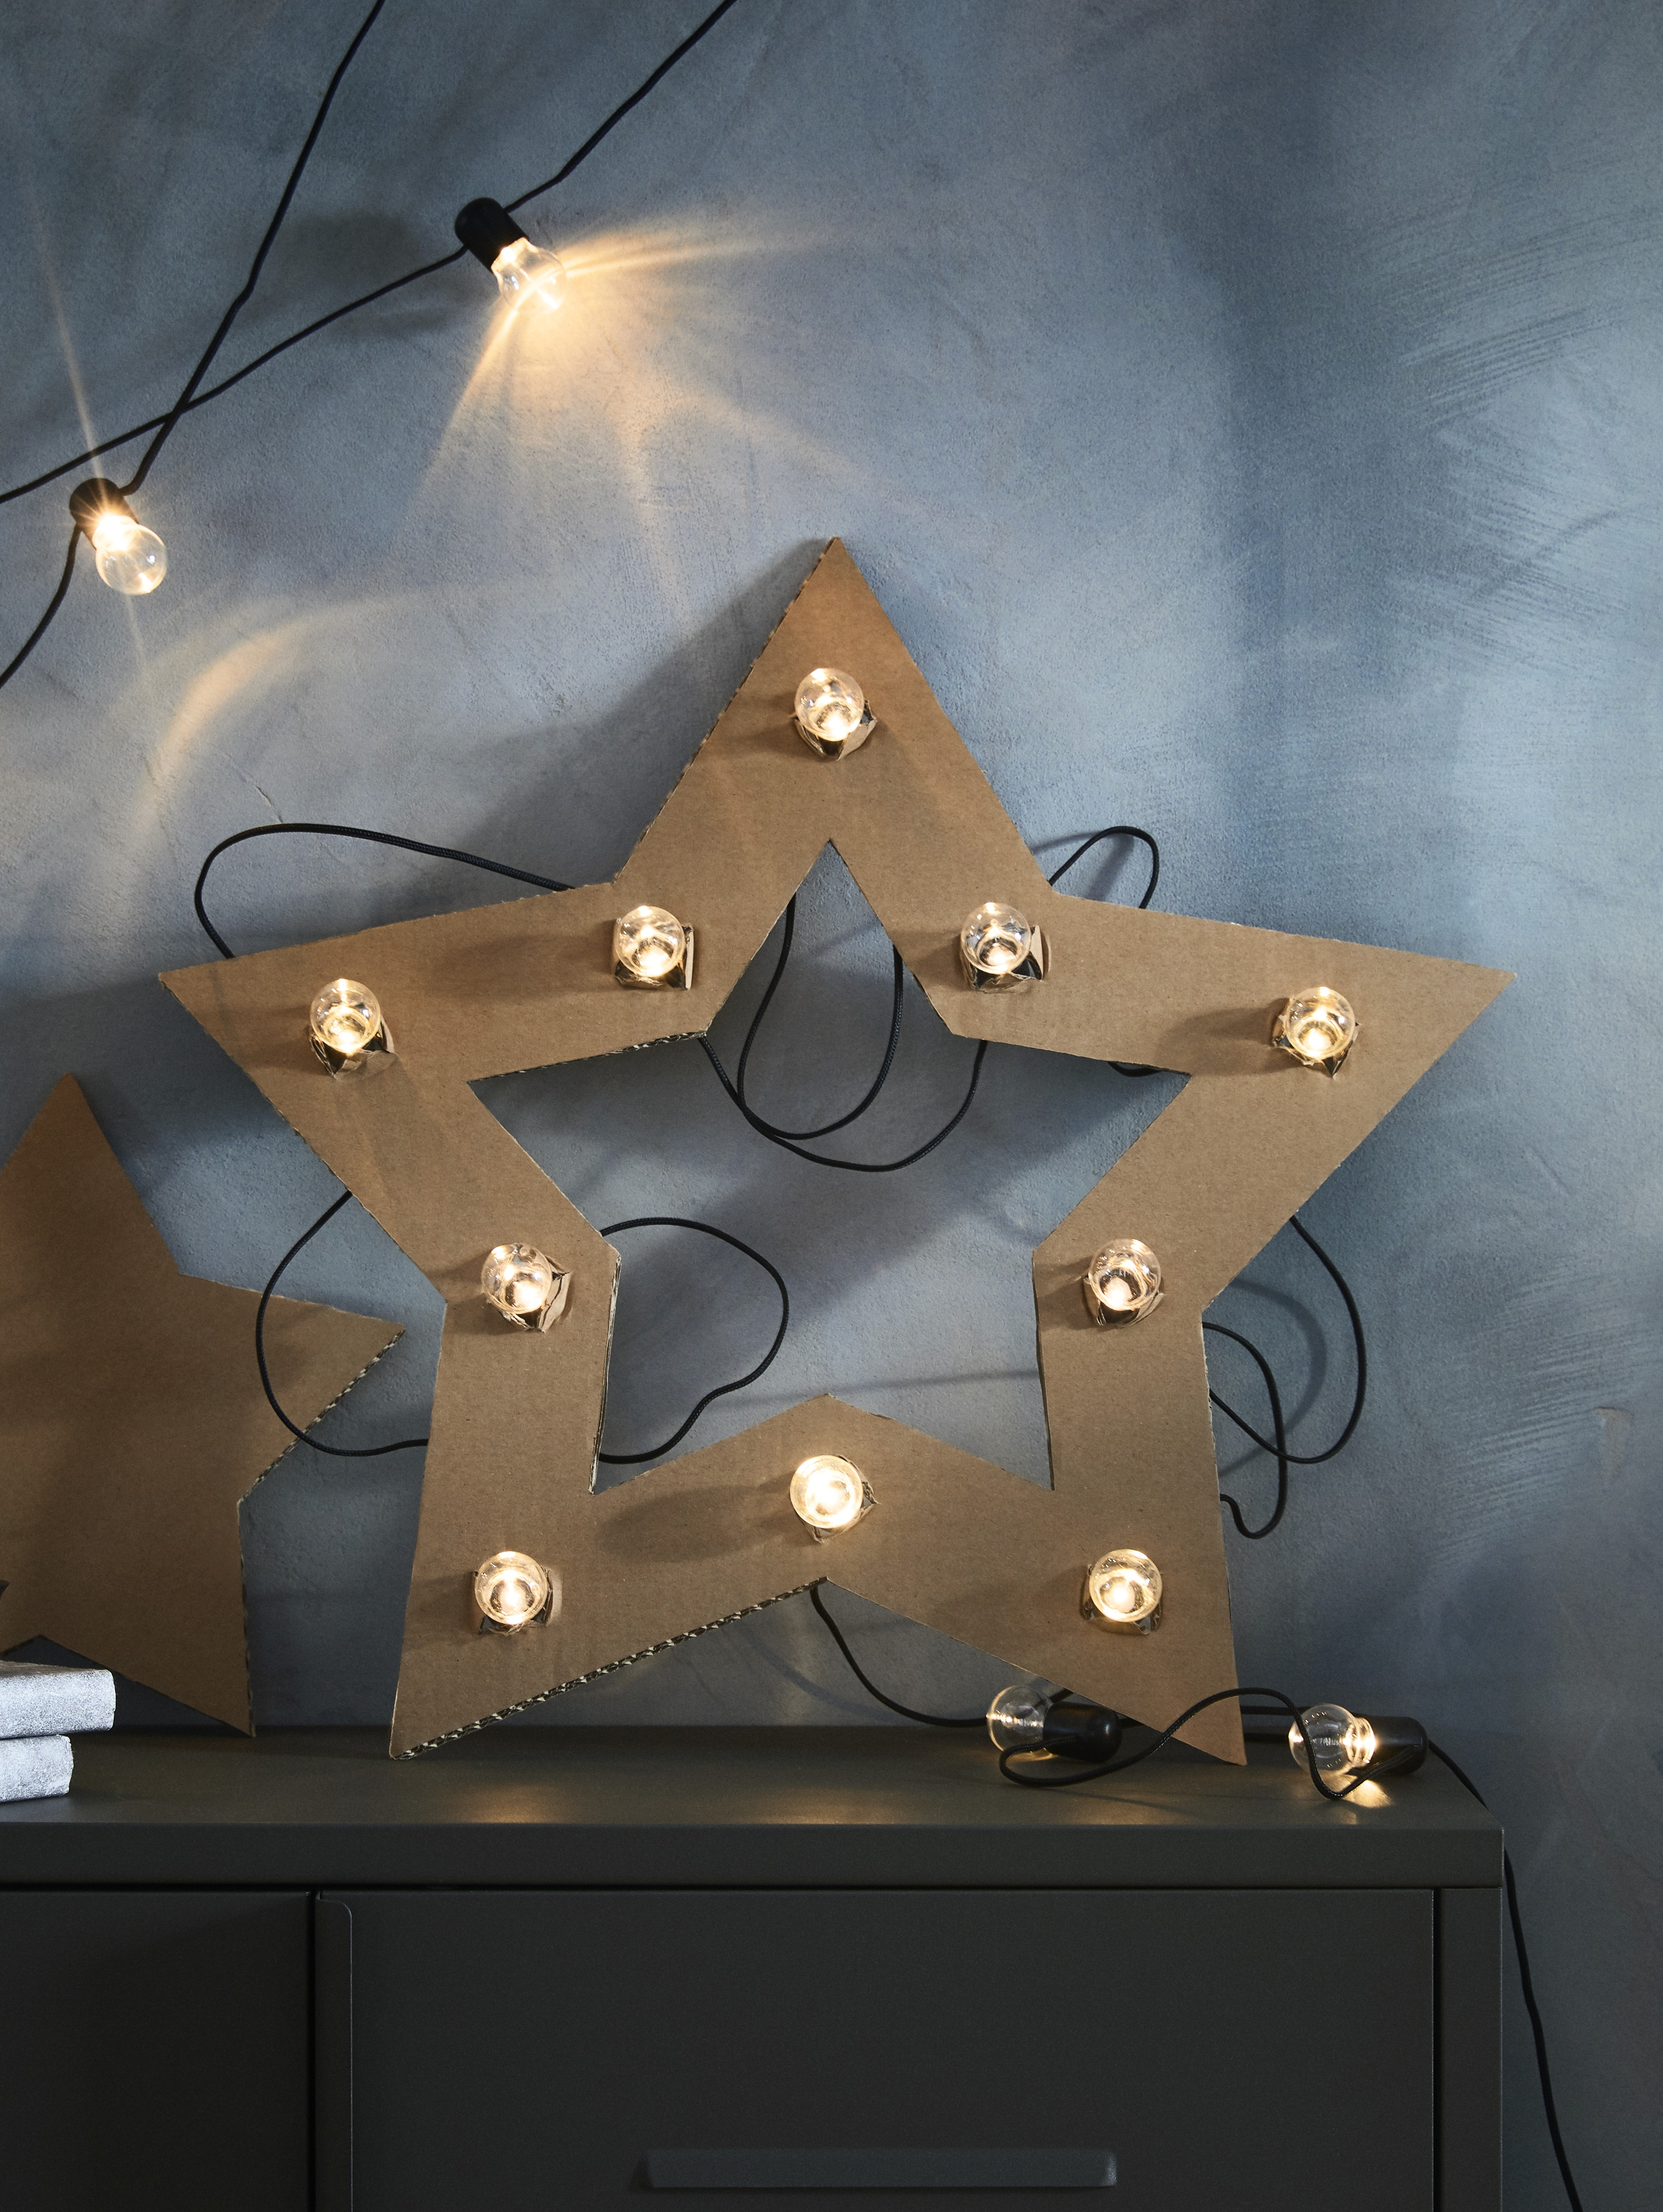 The bulbs of a BLÖTSNÖ LED lighting chain poke through holes in a cardboard cut-out of a star that sits on a metal cabinet.